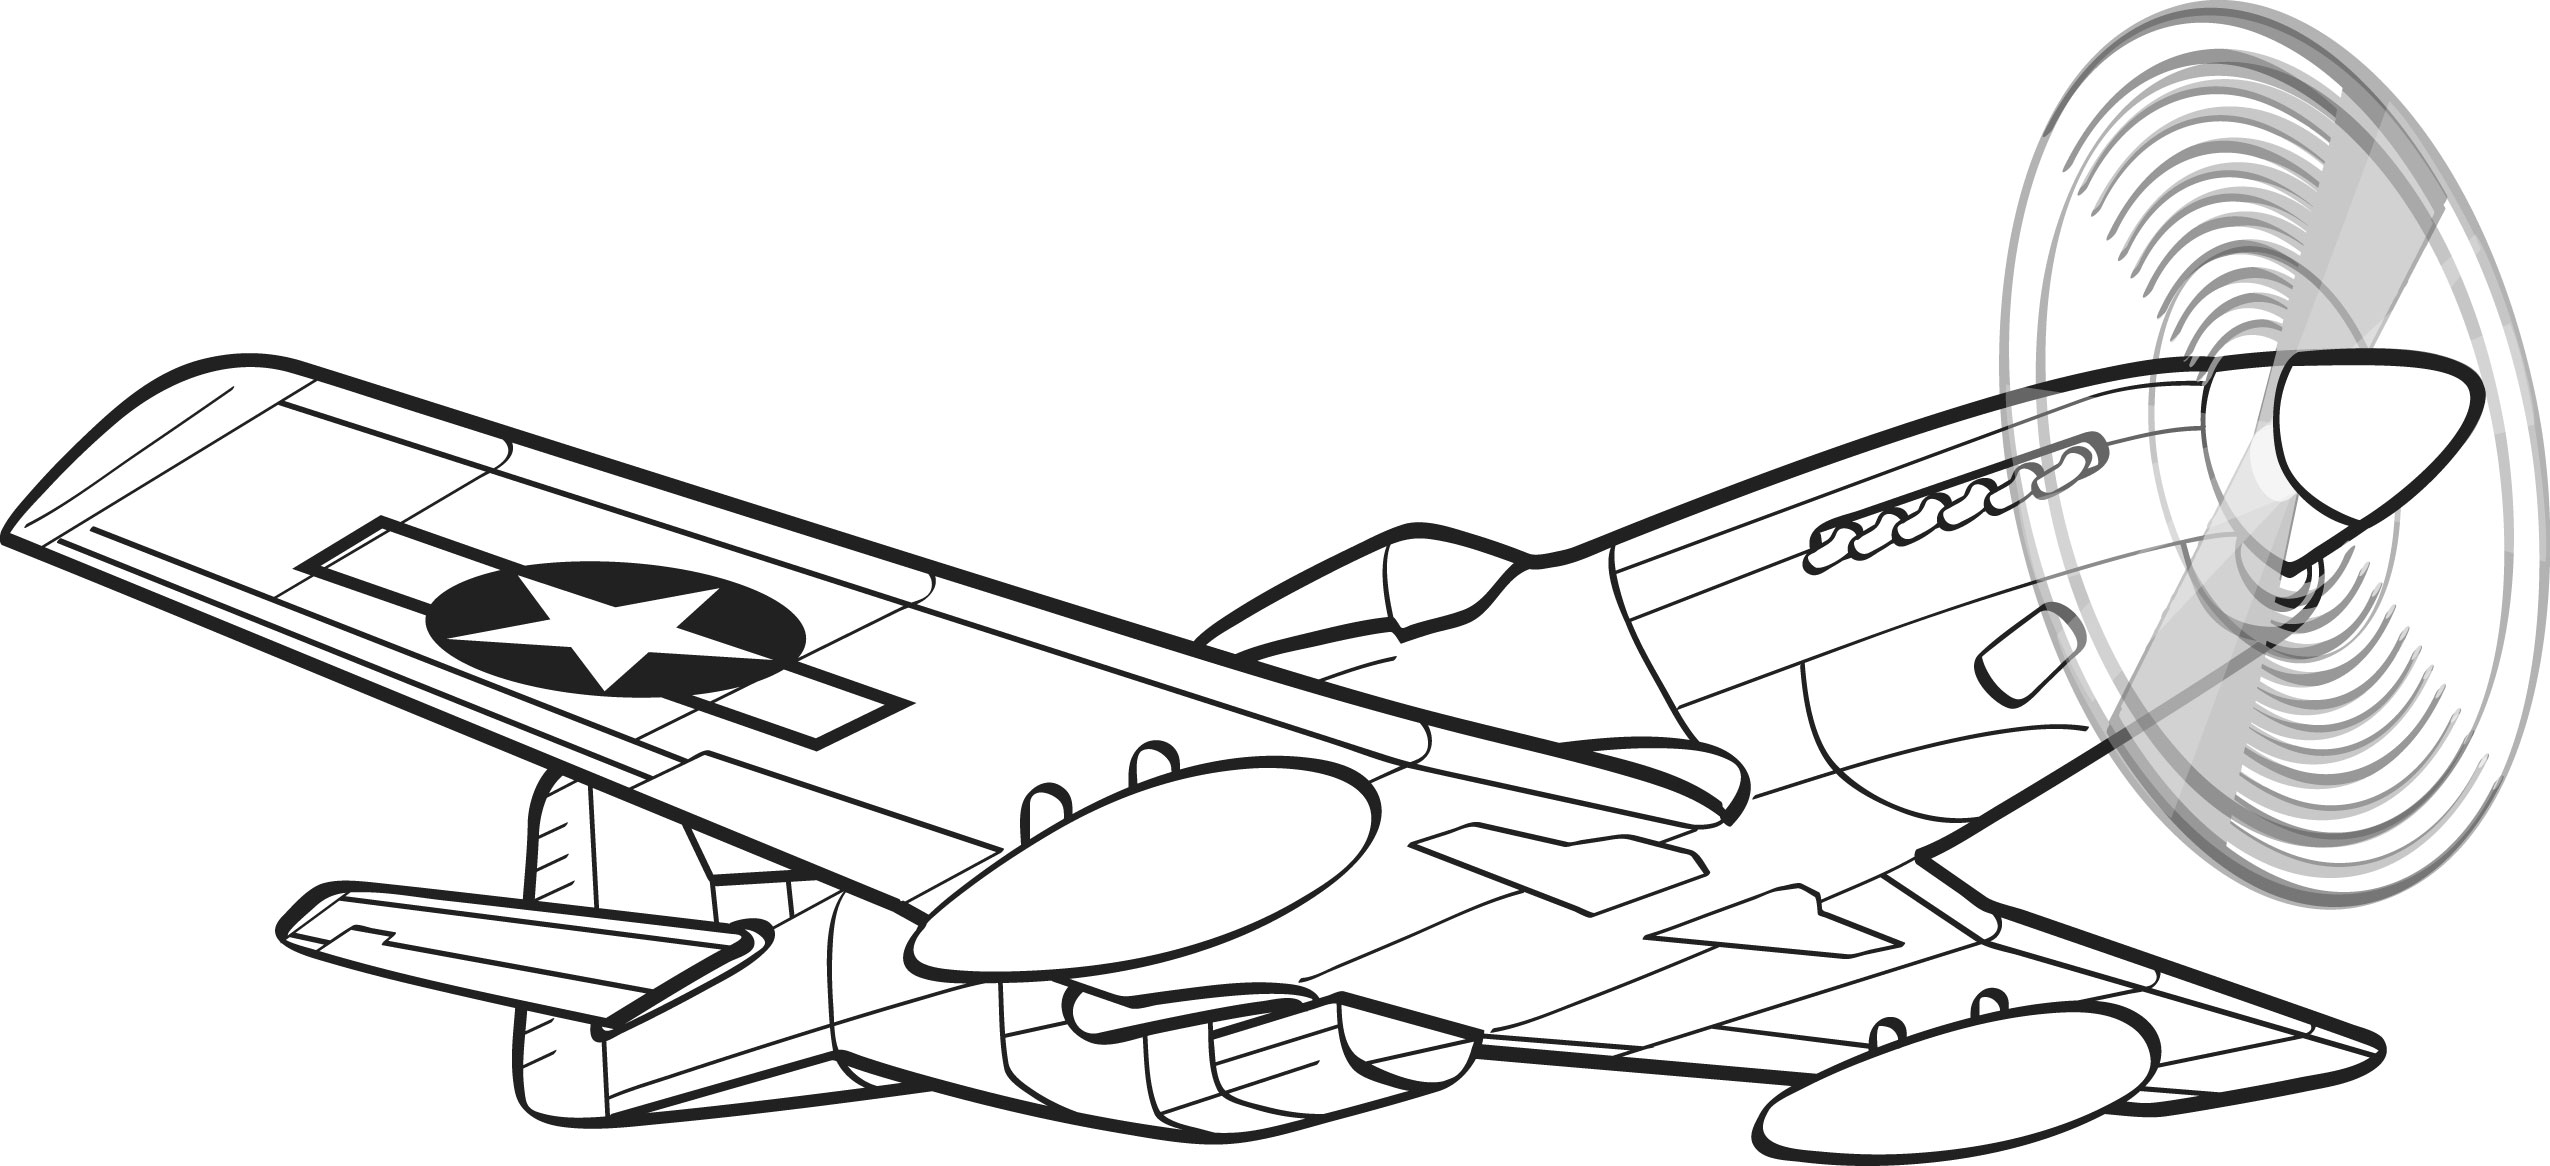 Airplane drawing at getdrawings. Biplane clipart old fashioned